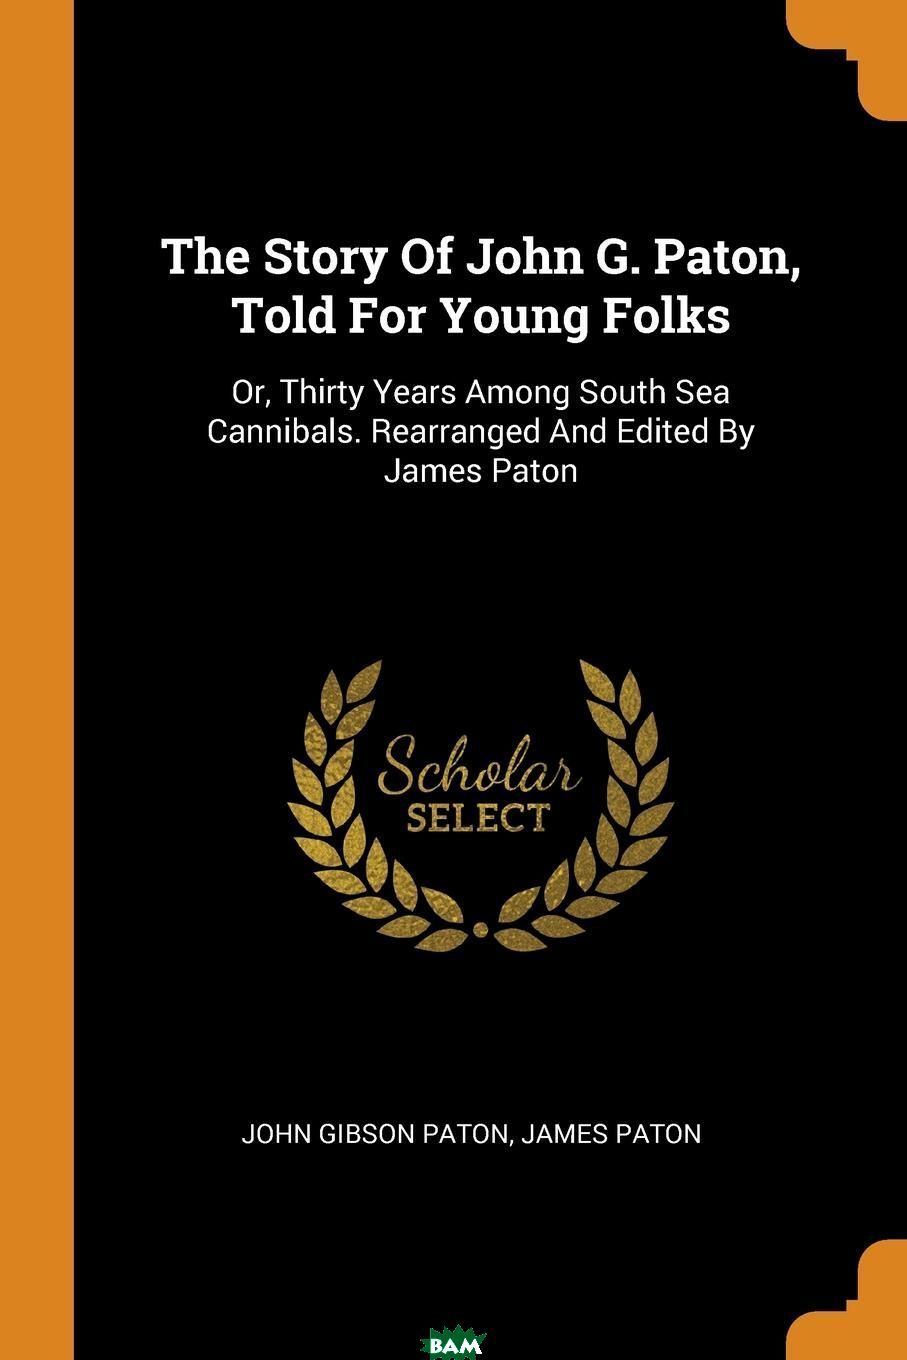 Купить The Story Of John G. Paton, Told For Young Folks. Or, Thirty Years Among South Sea Cannibals. Rearranged And Edited By James Paton, John Gibson Paton, James Paton, 9780353525481